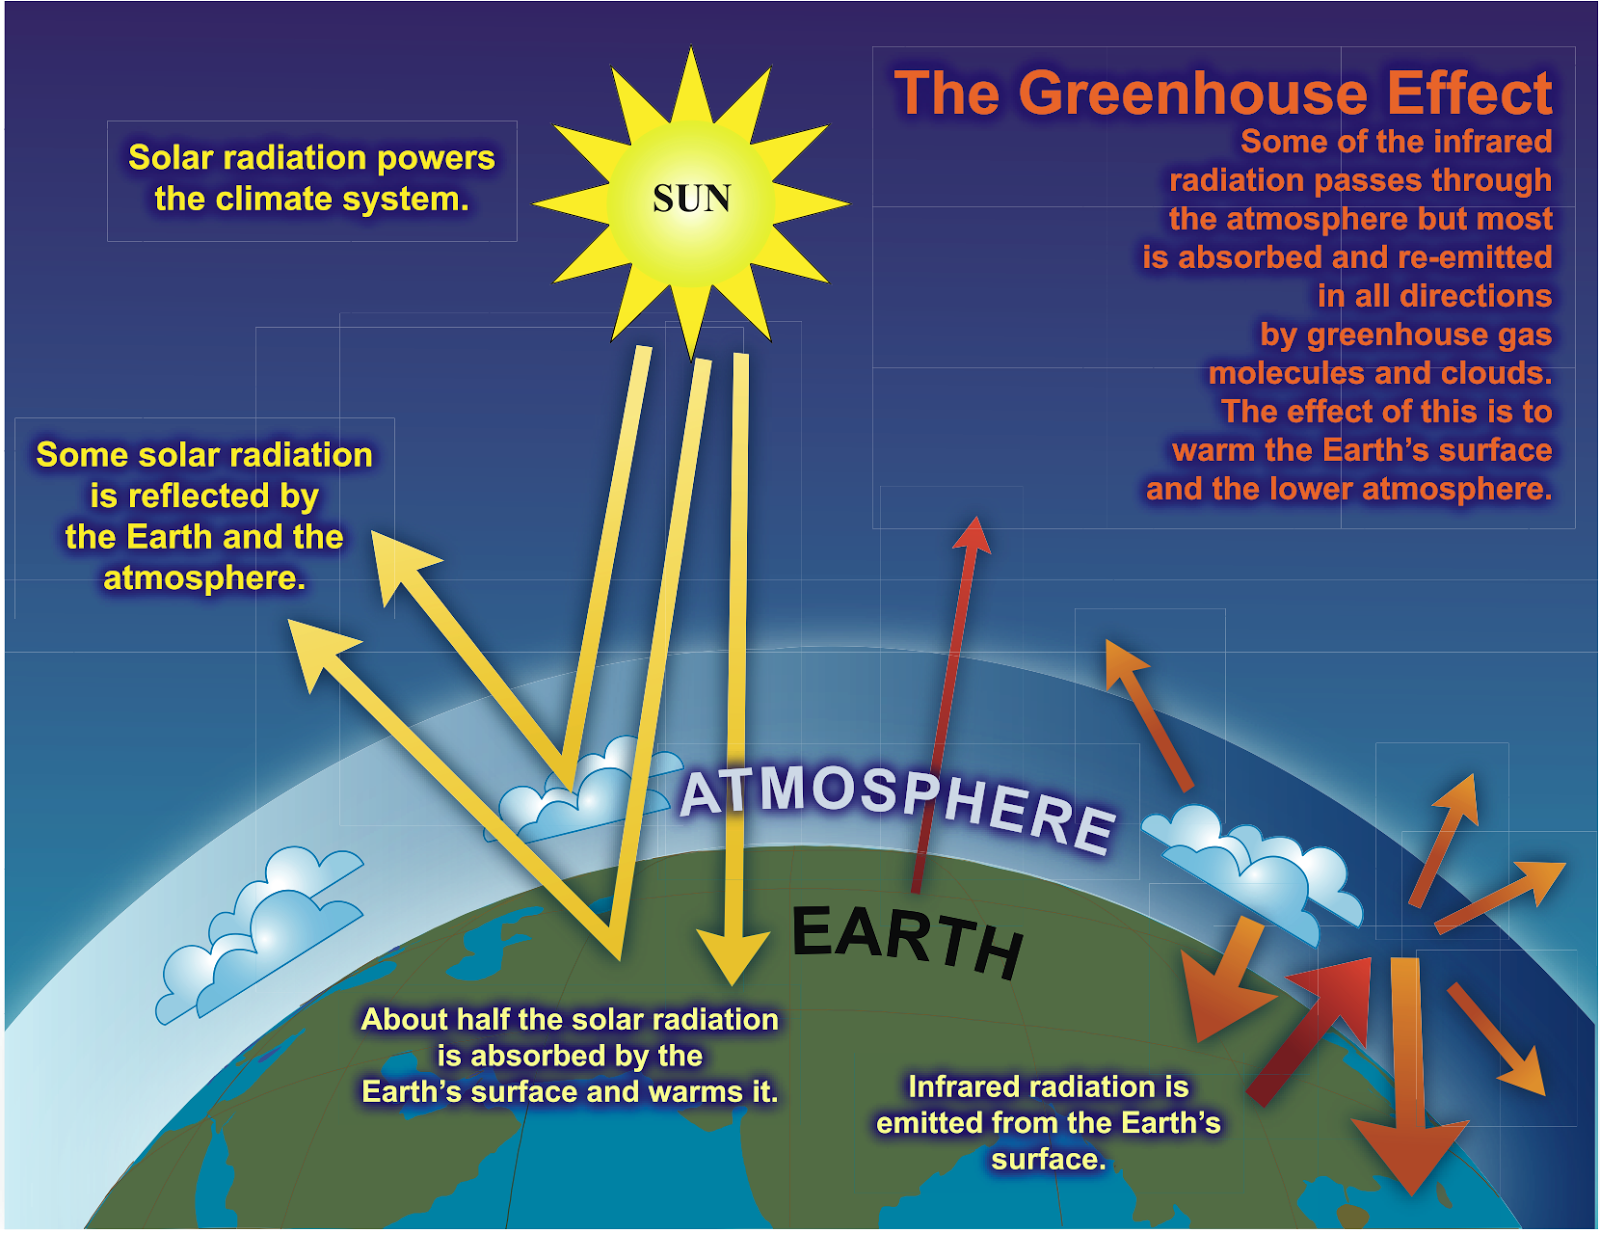 greenhouse effect and global warming images